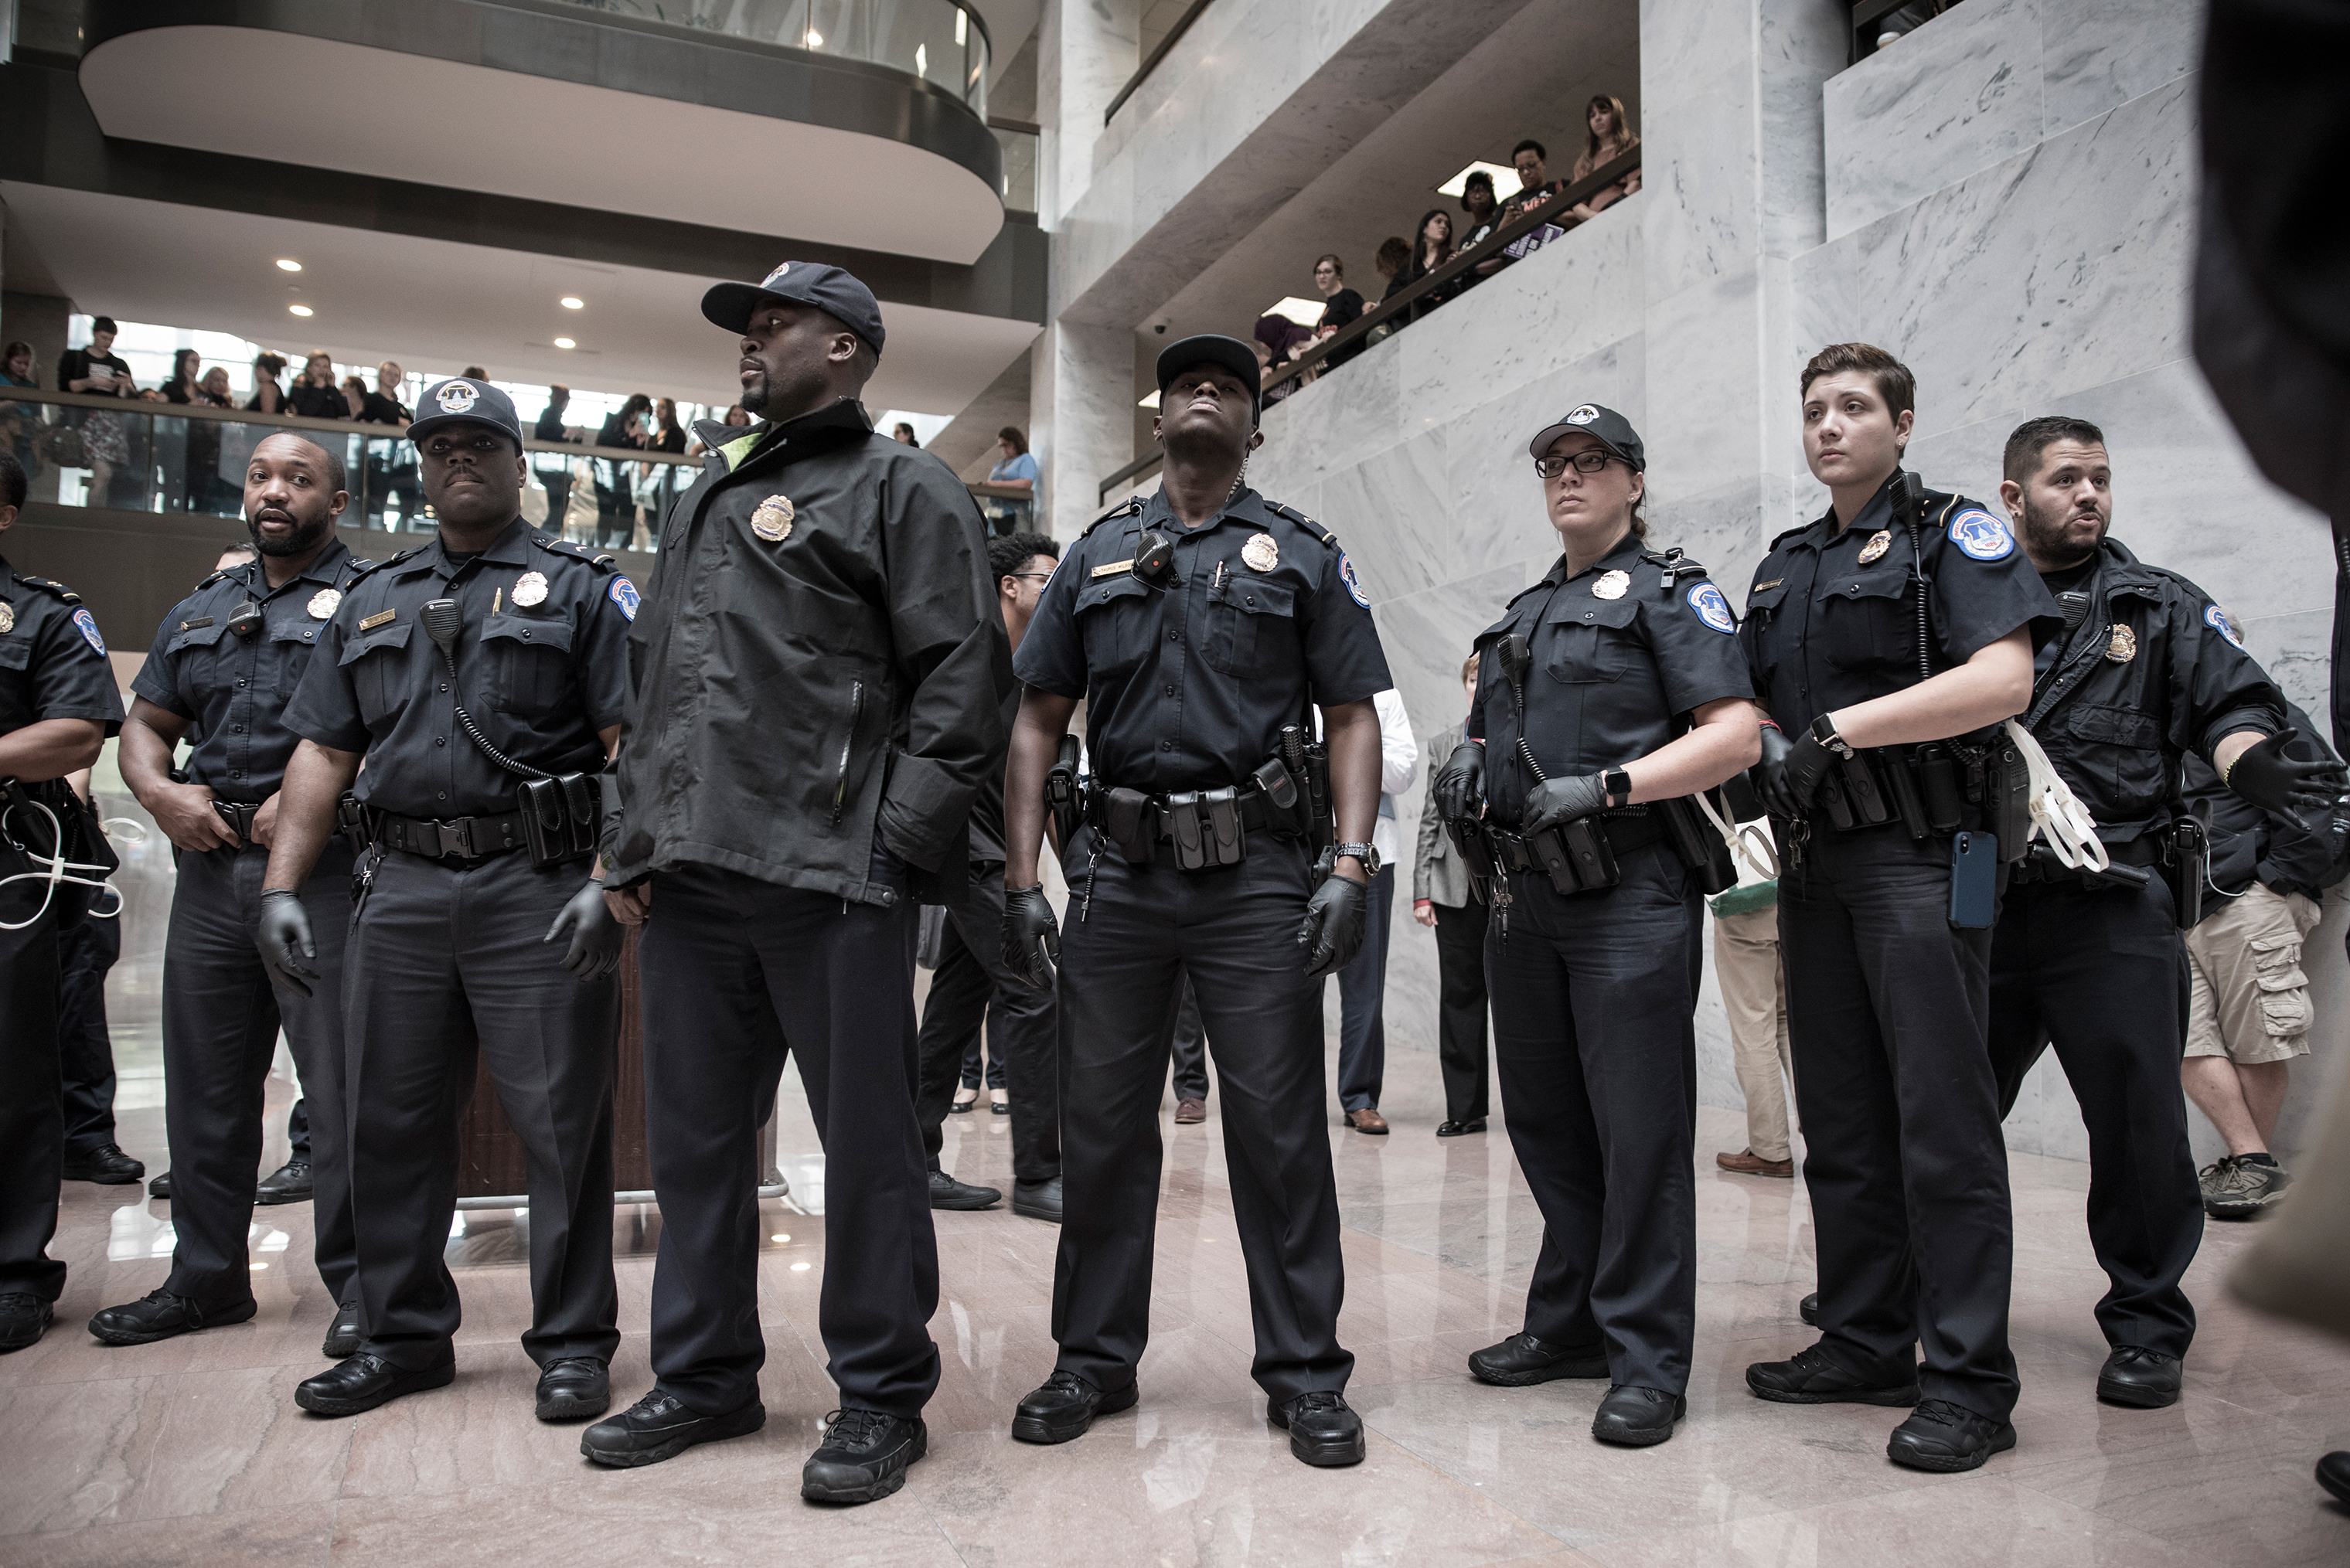 Police gathered to oversee protesters on the ground floor of the Hart Senate Office Building, which is near where the hearing will take place.